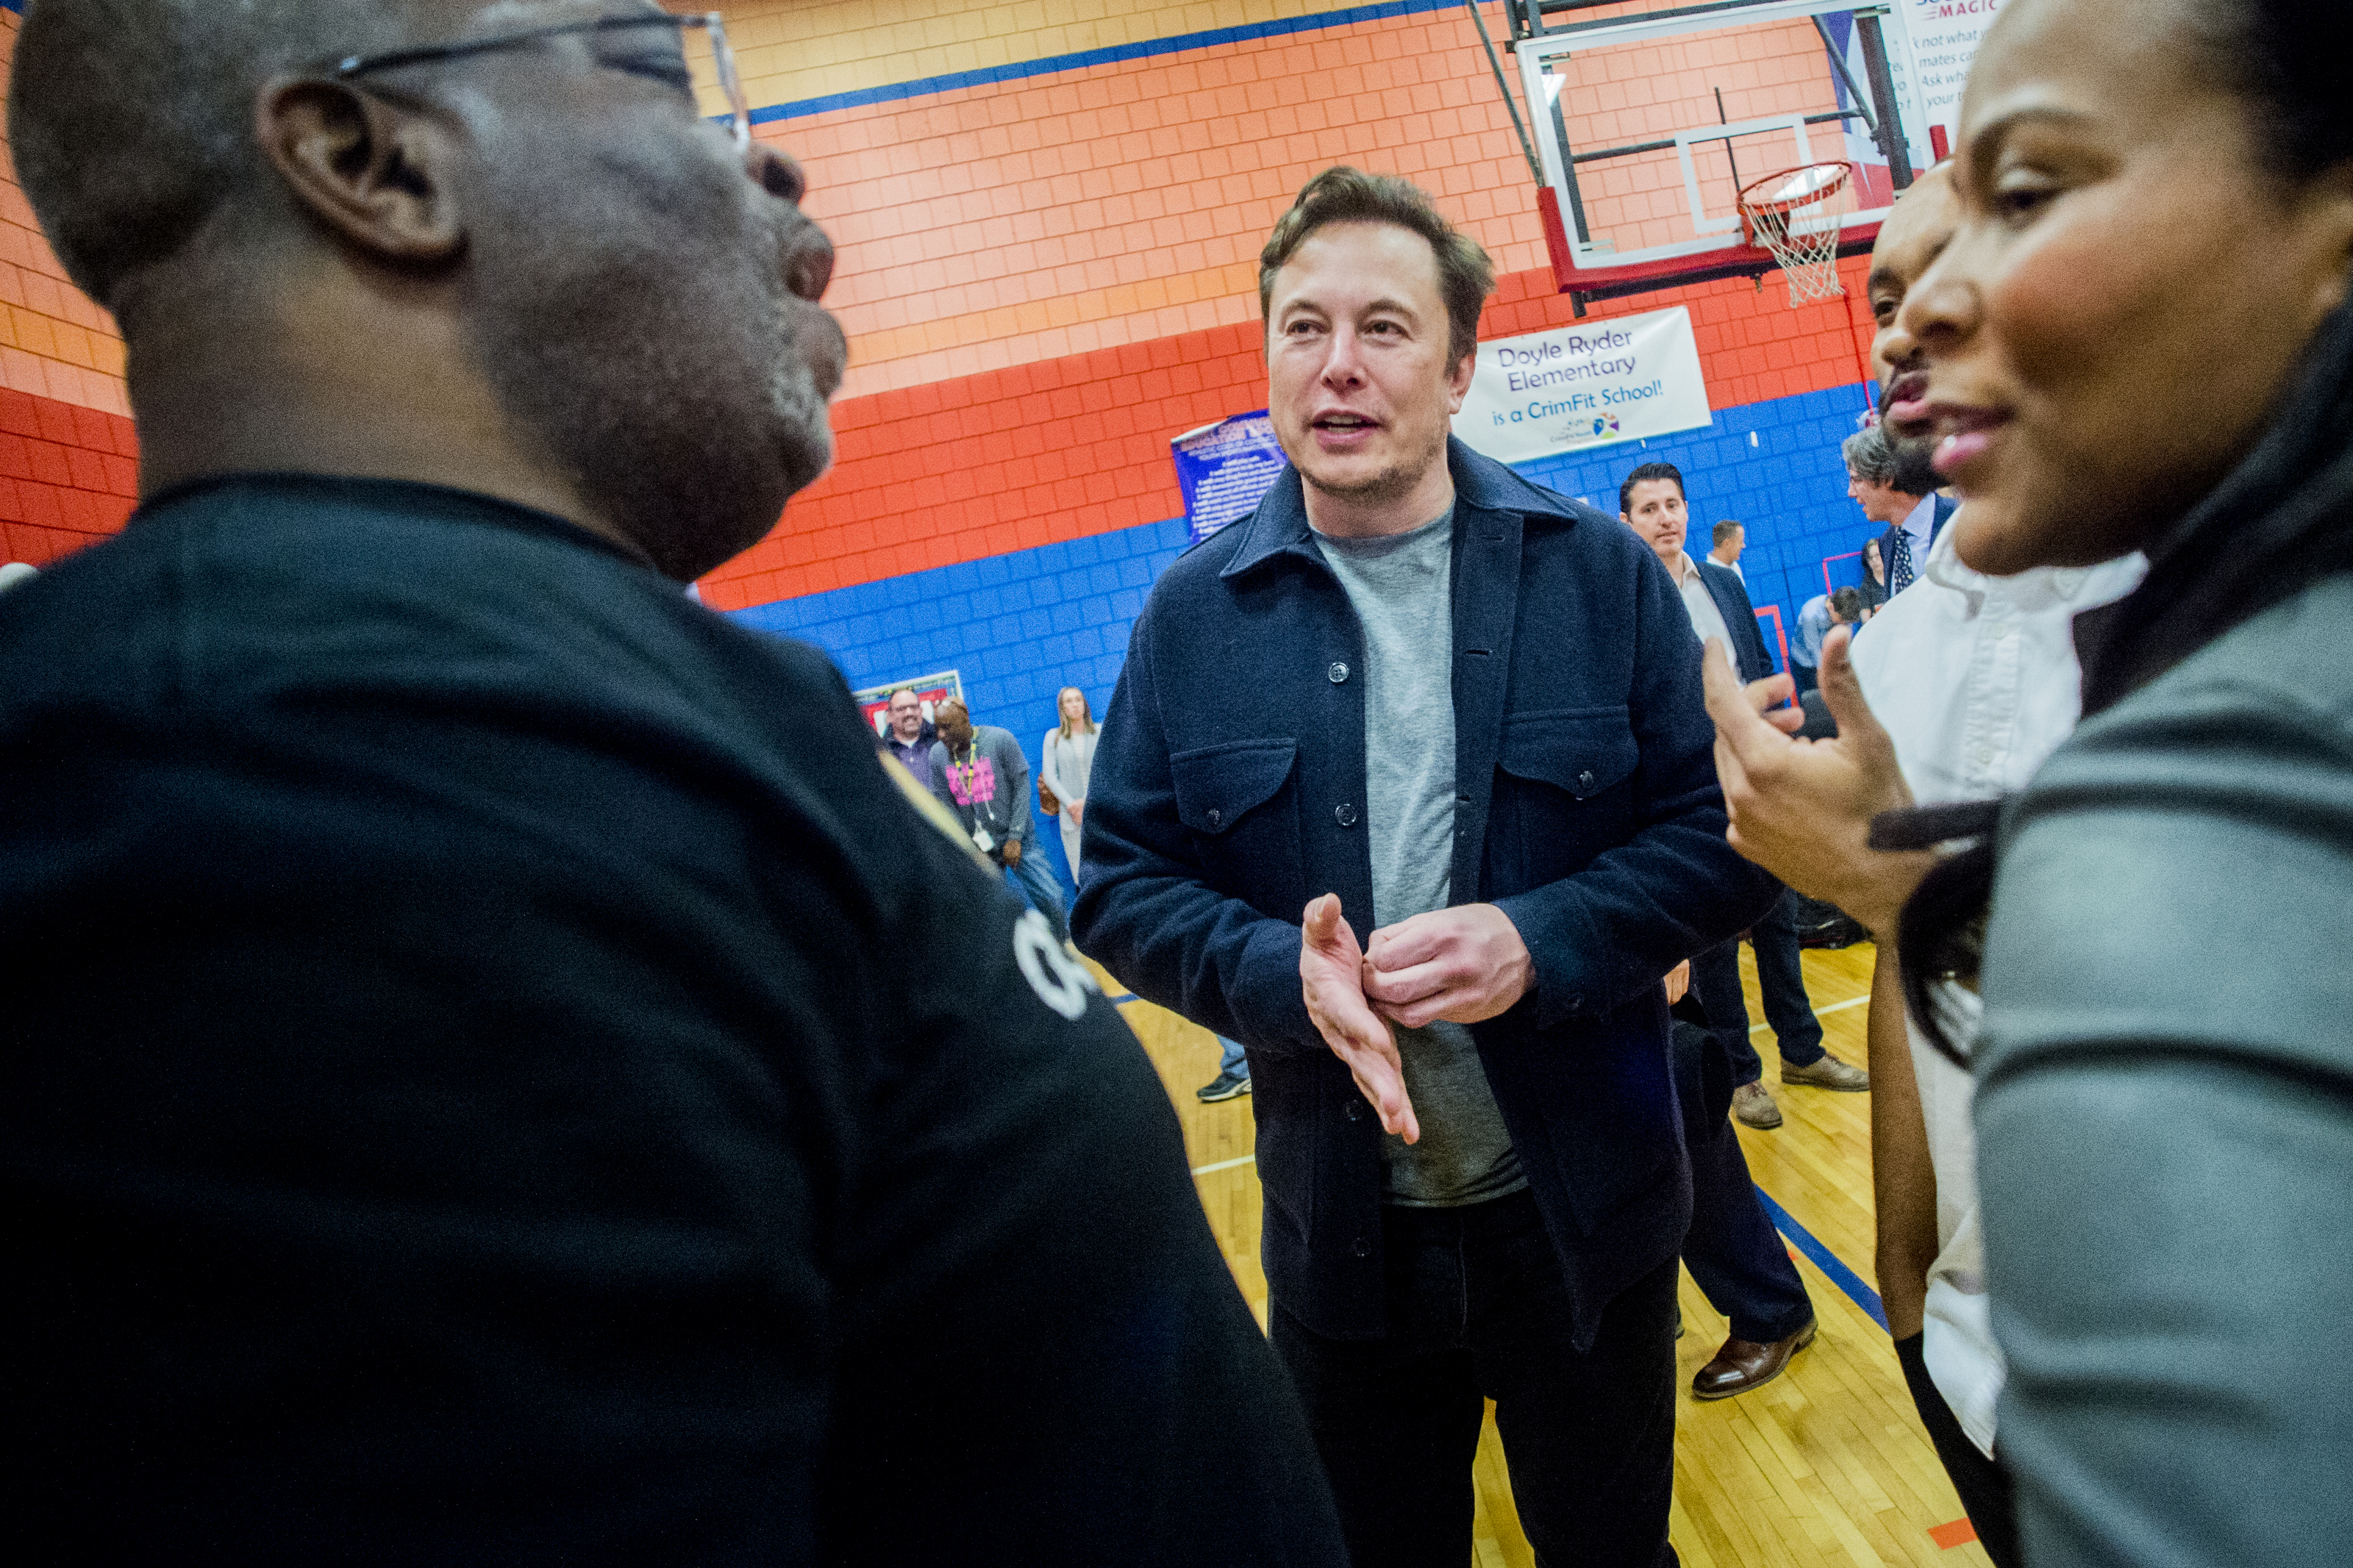 Elon Musk-funded water stations to be installed in Flint school buildings in coming months